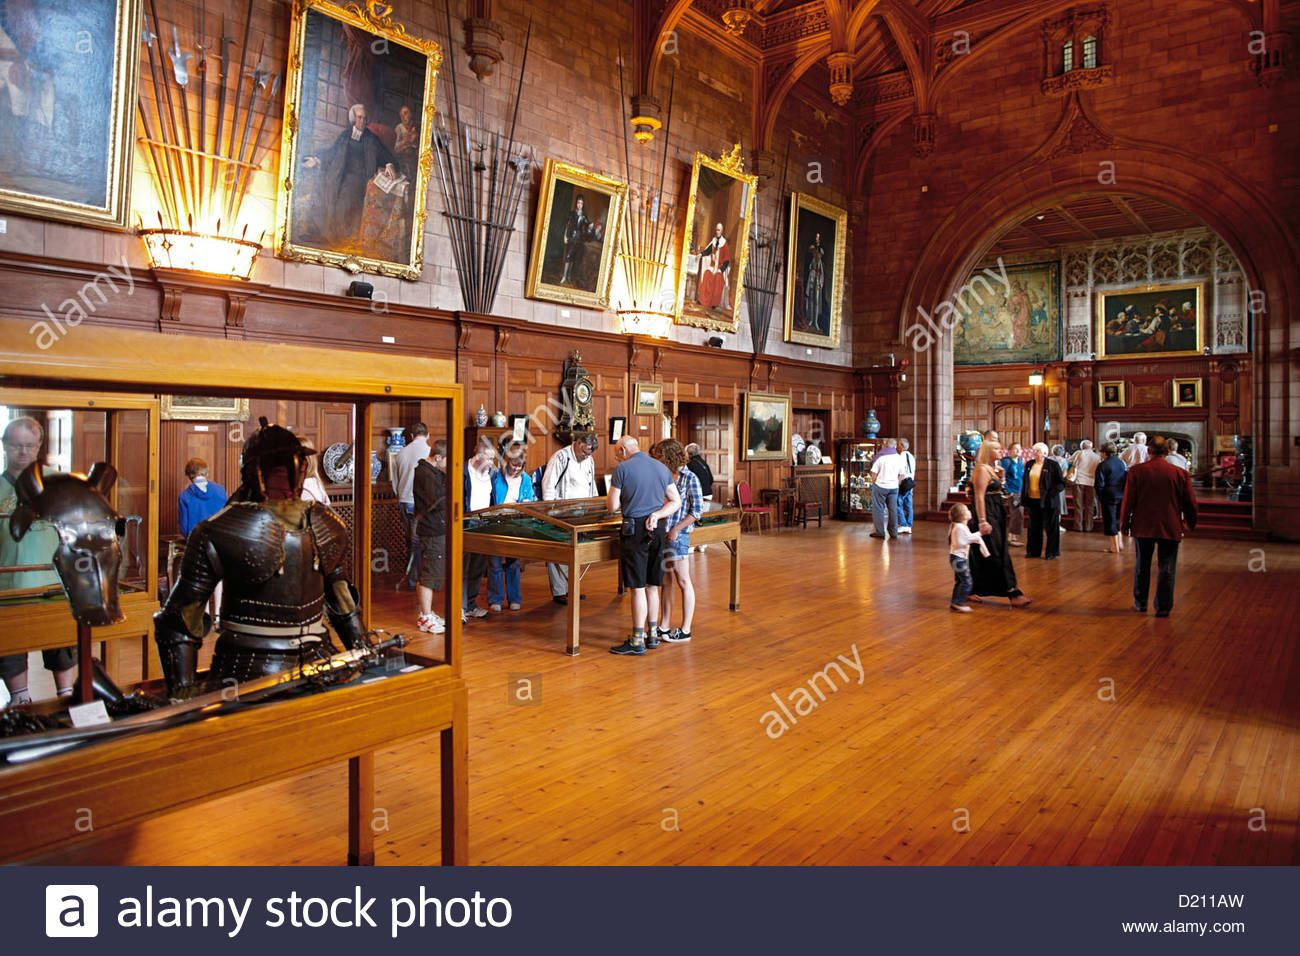 Download this stock image: Visitors in the exibition at Kings Hall in Bamburgh Castle, Bamburgh, Northumberland, England, Great Britain, Europe - D211AW from Alamy's library of millions of high resolution stock photos, illustrations and vectors.